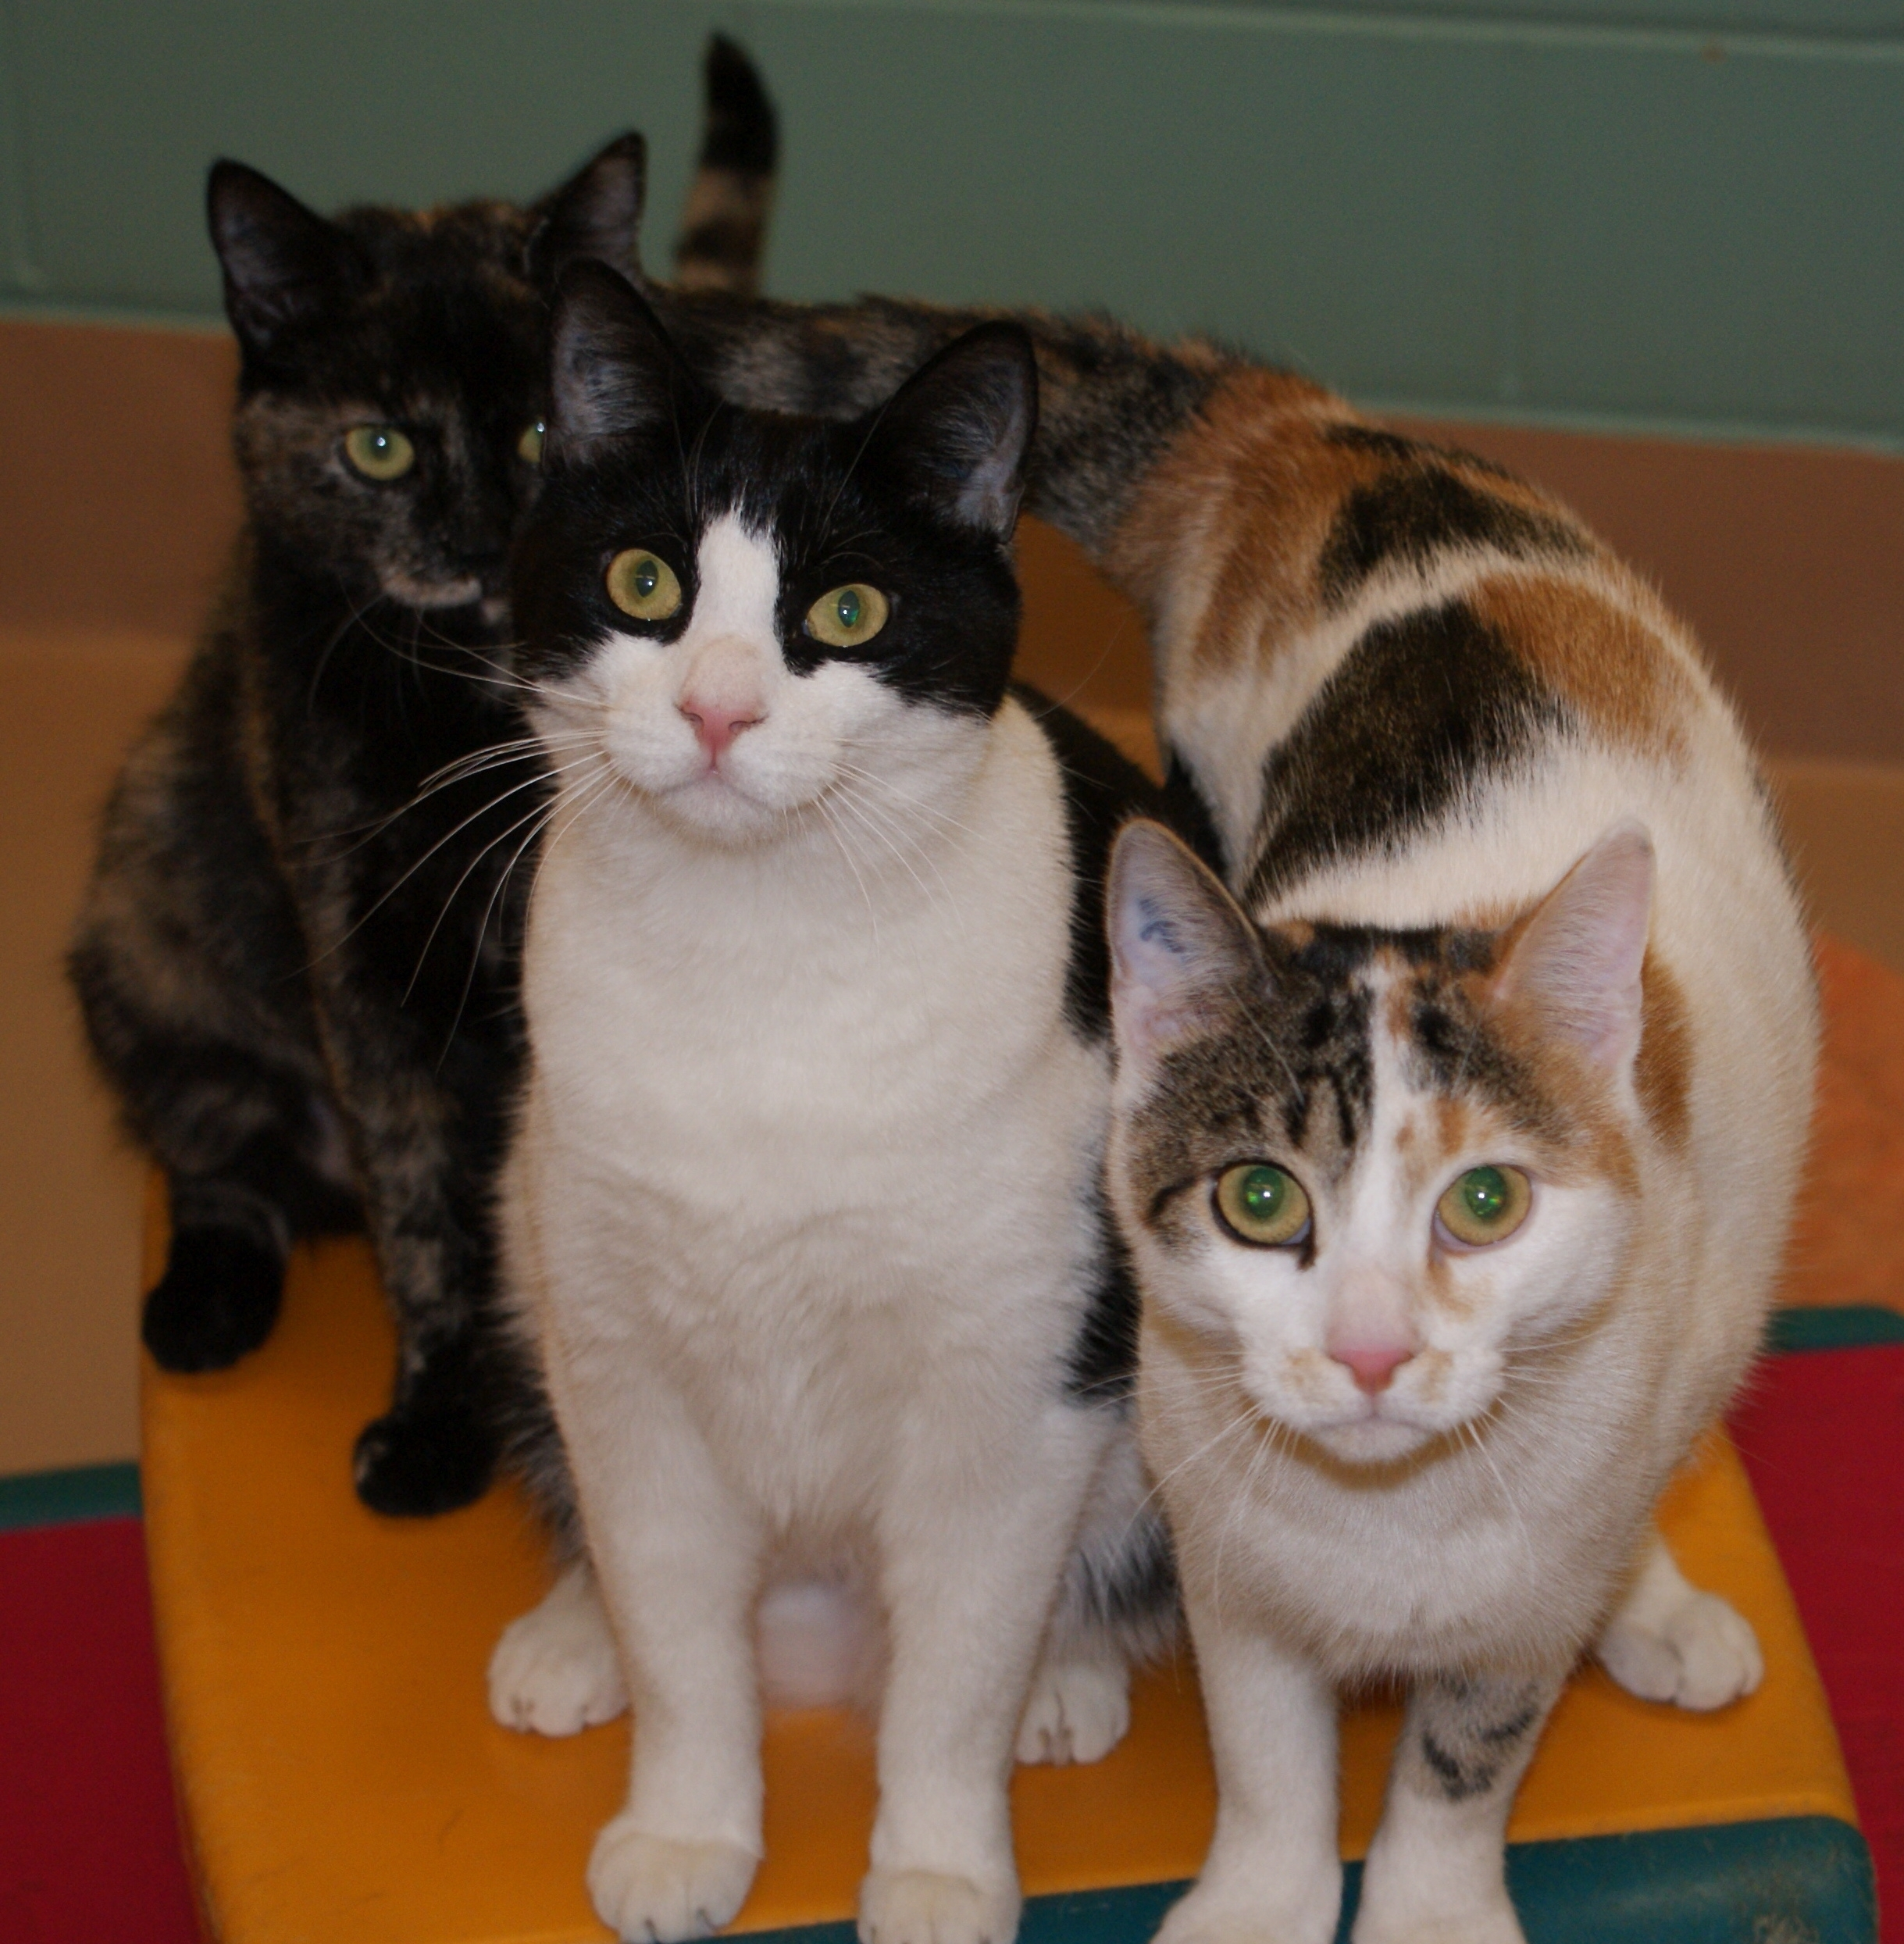 Three of the CREW cats - Taneshia, Beth and Paige